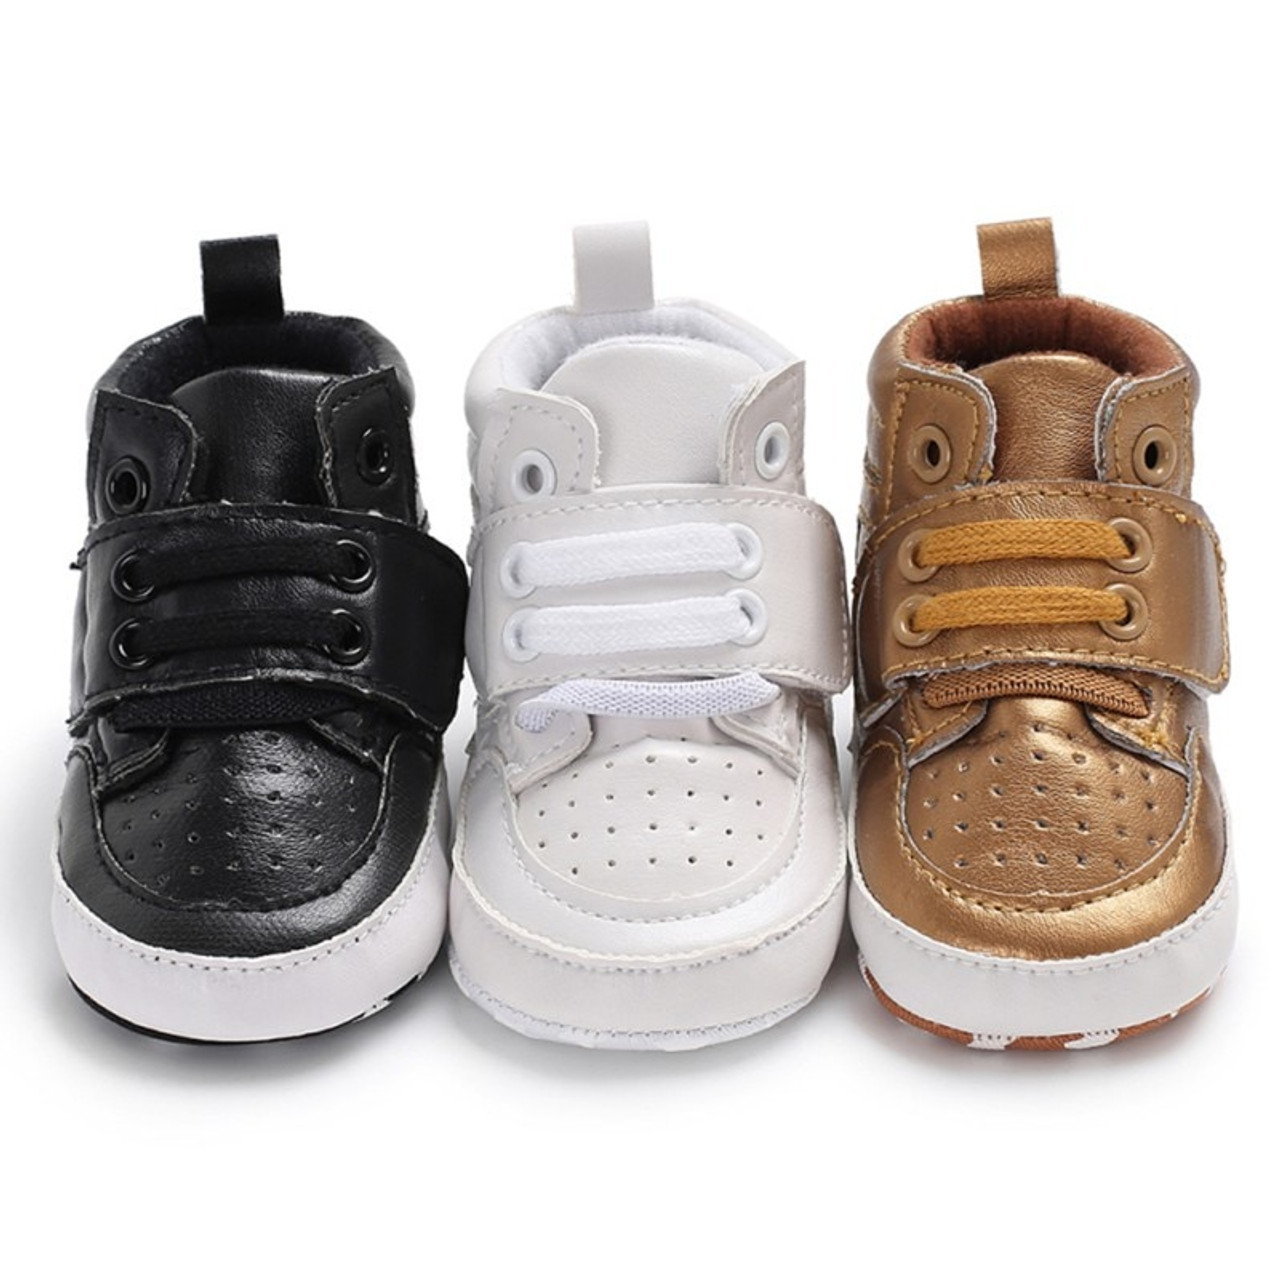 Newborn Sneakers High Top Solid Infant Toddler Antislip Prewalker Crib Shoes